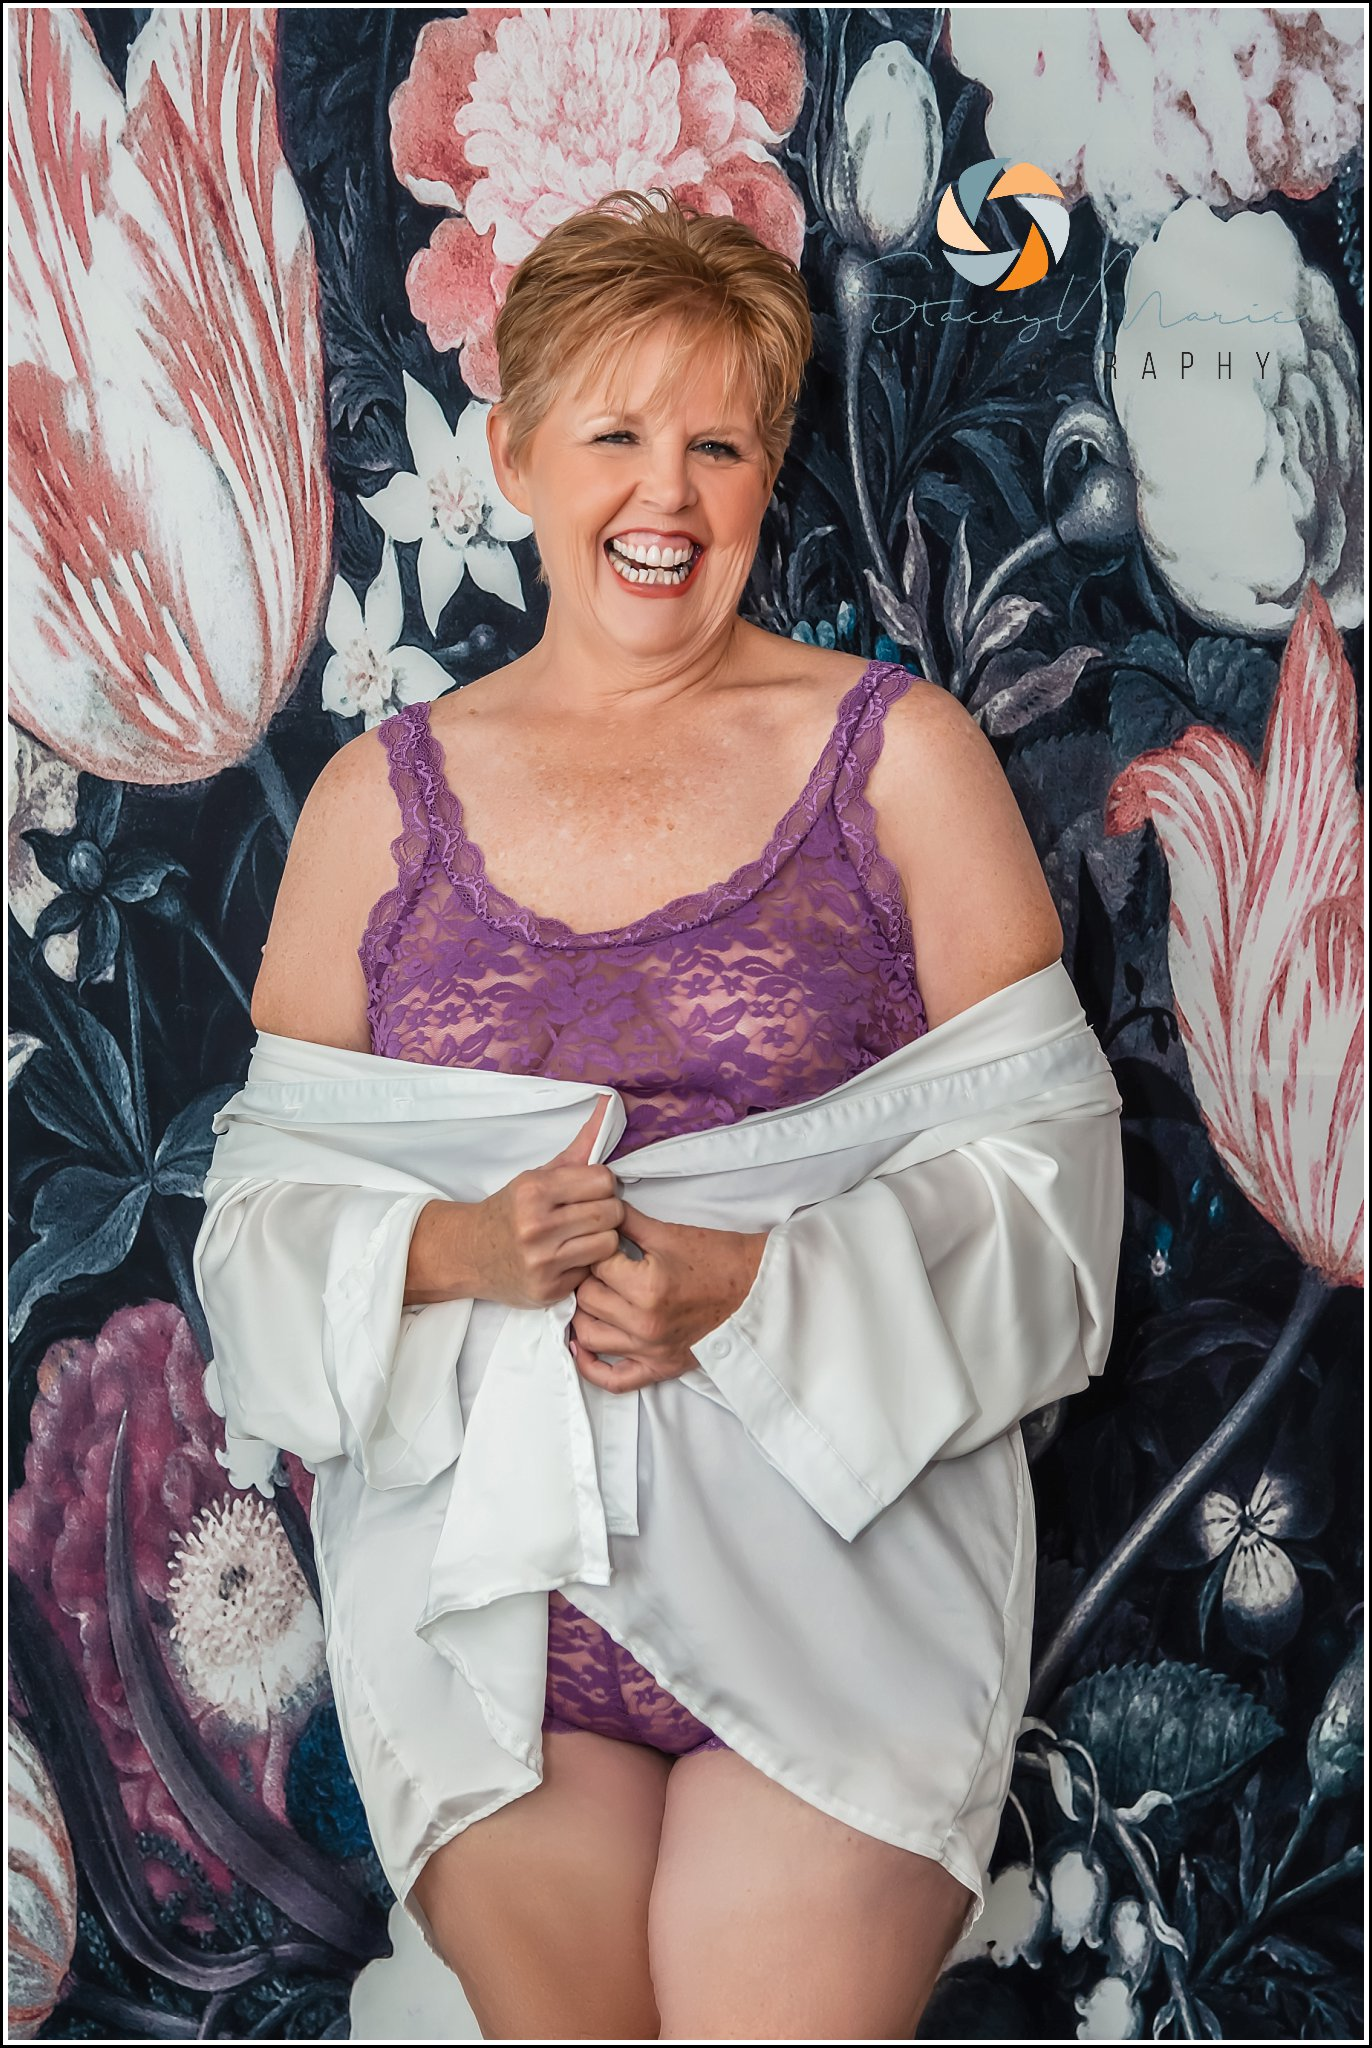 An older woman, stepping out of the box, poses in purple lingerie and a silk shirt for her boudoir session.